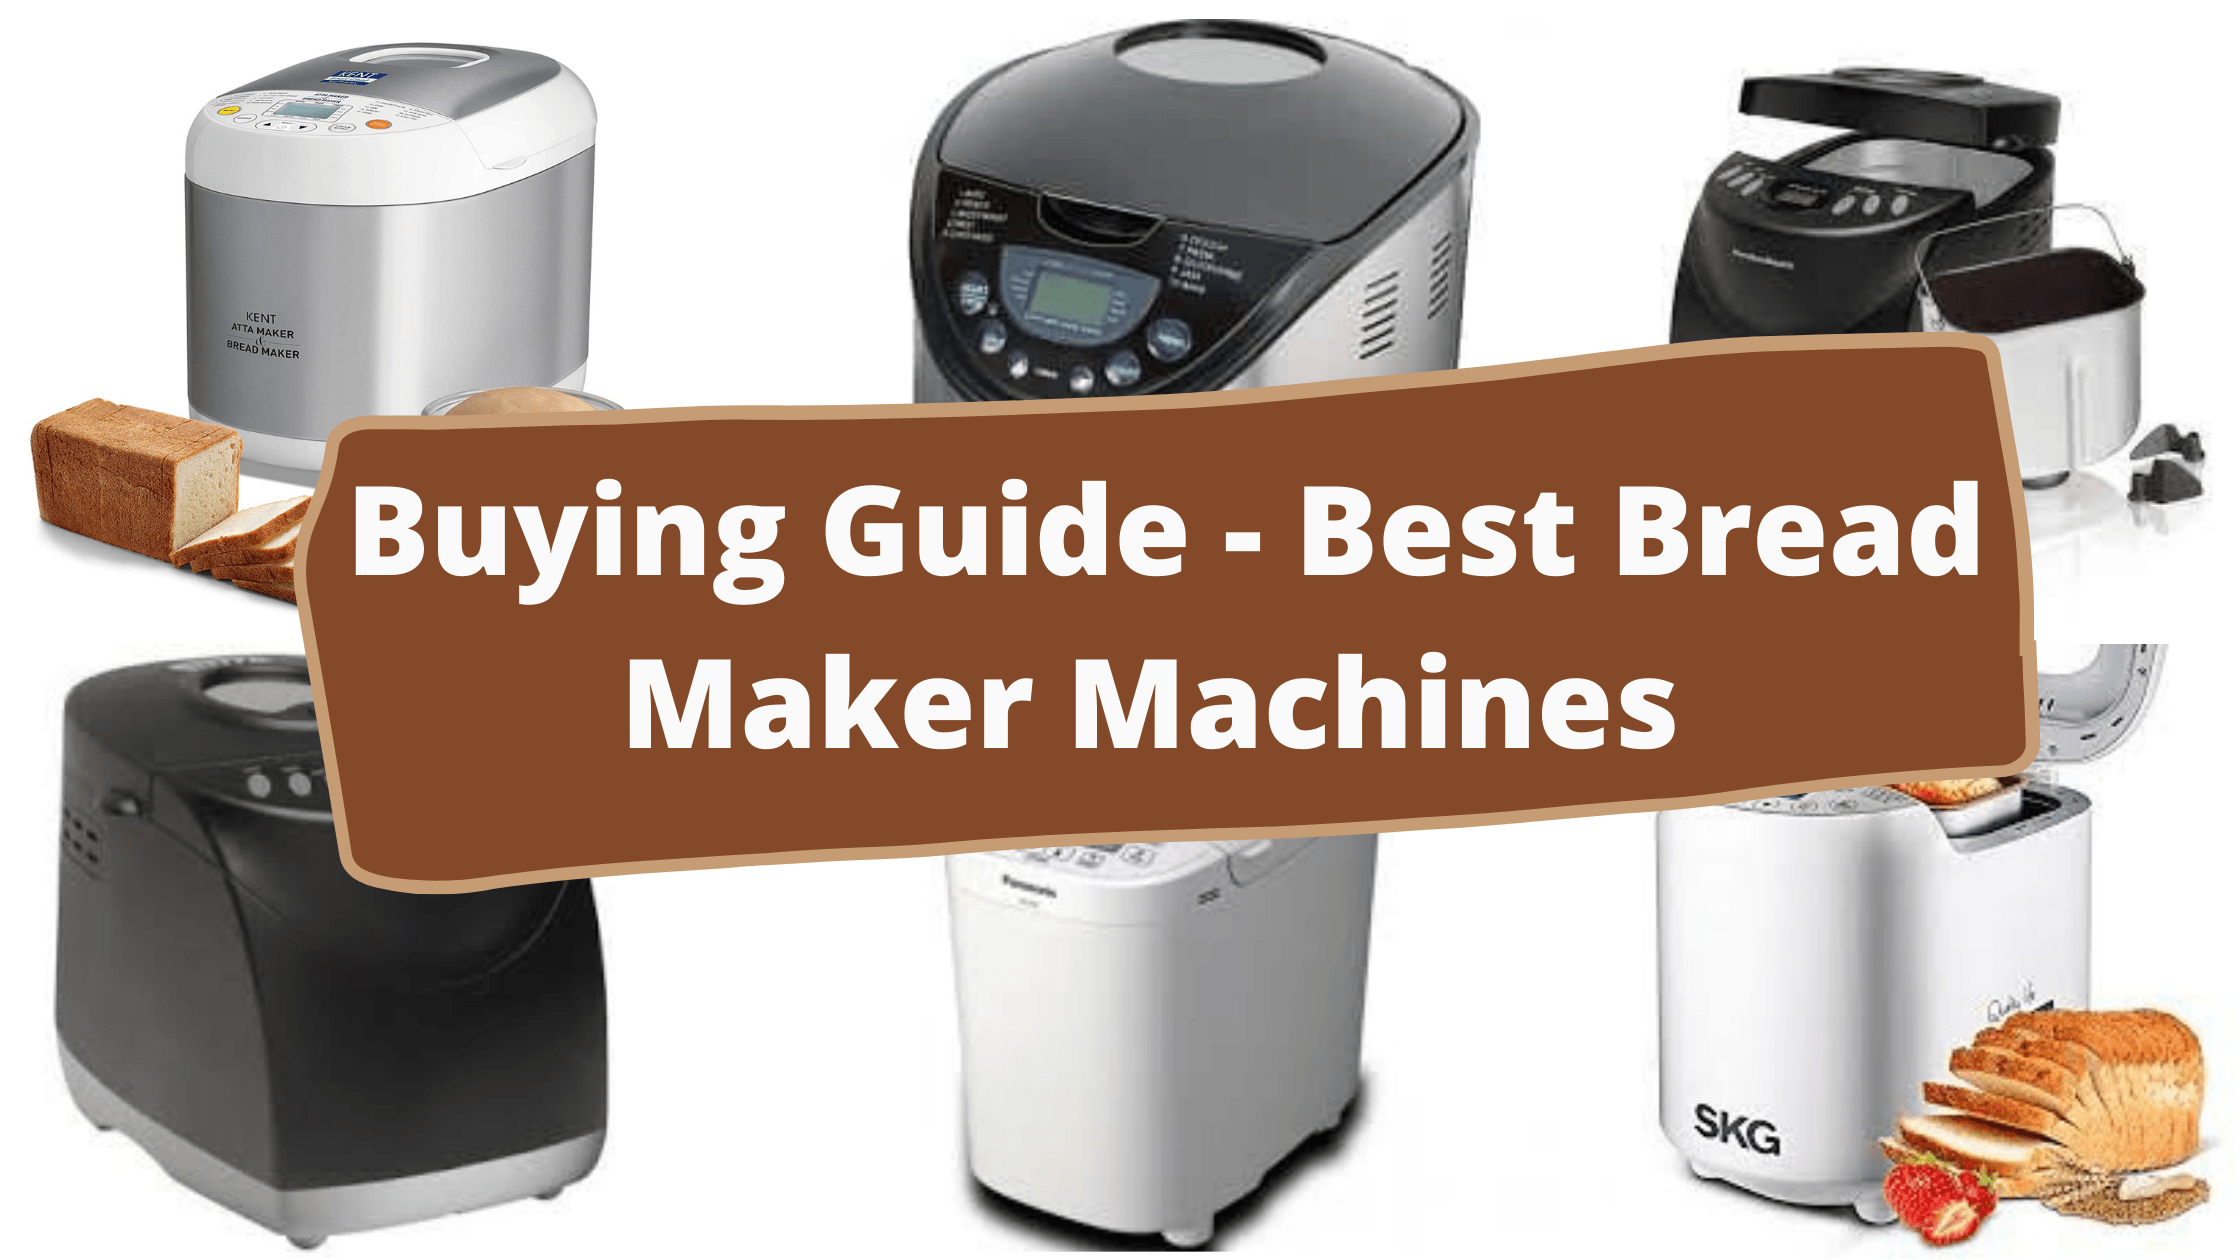 Buying Guide - Best Bread Maker Machines